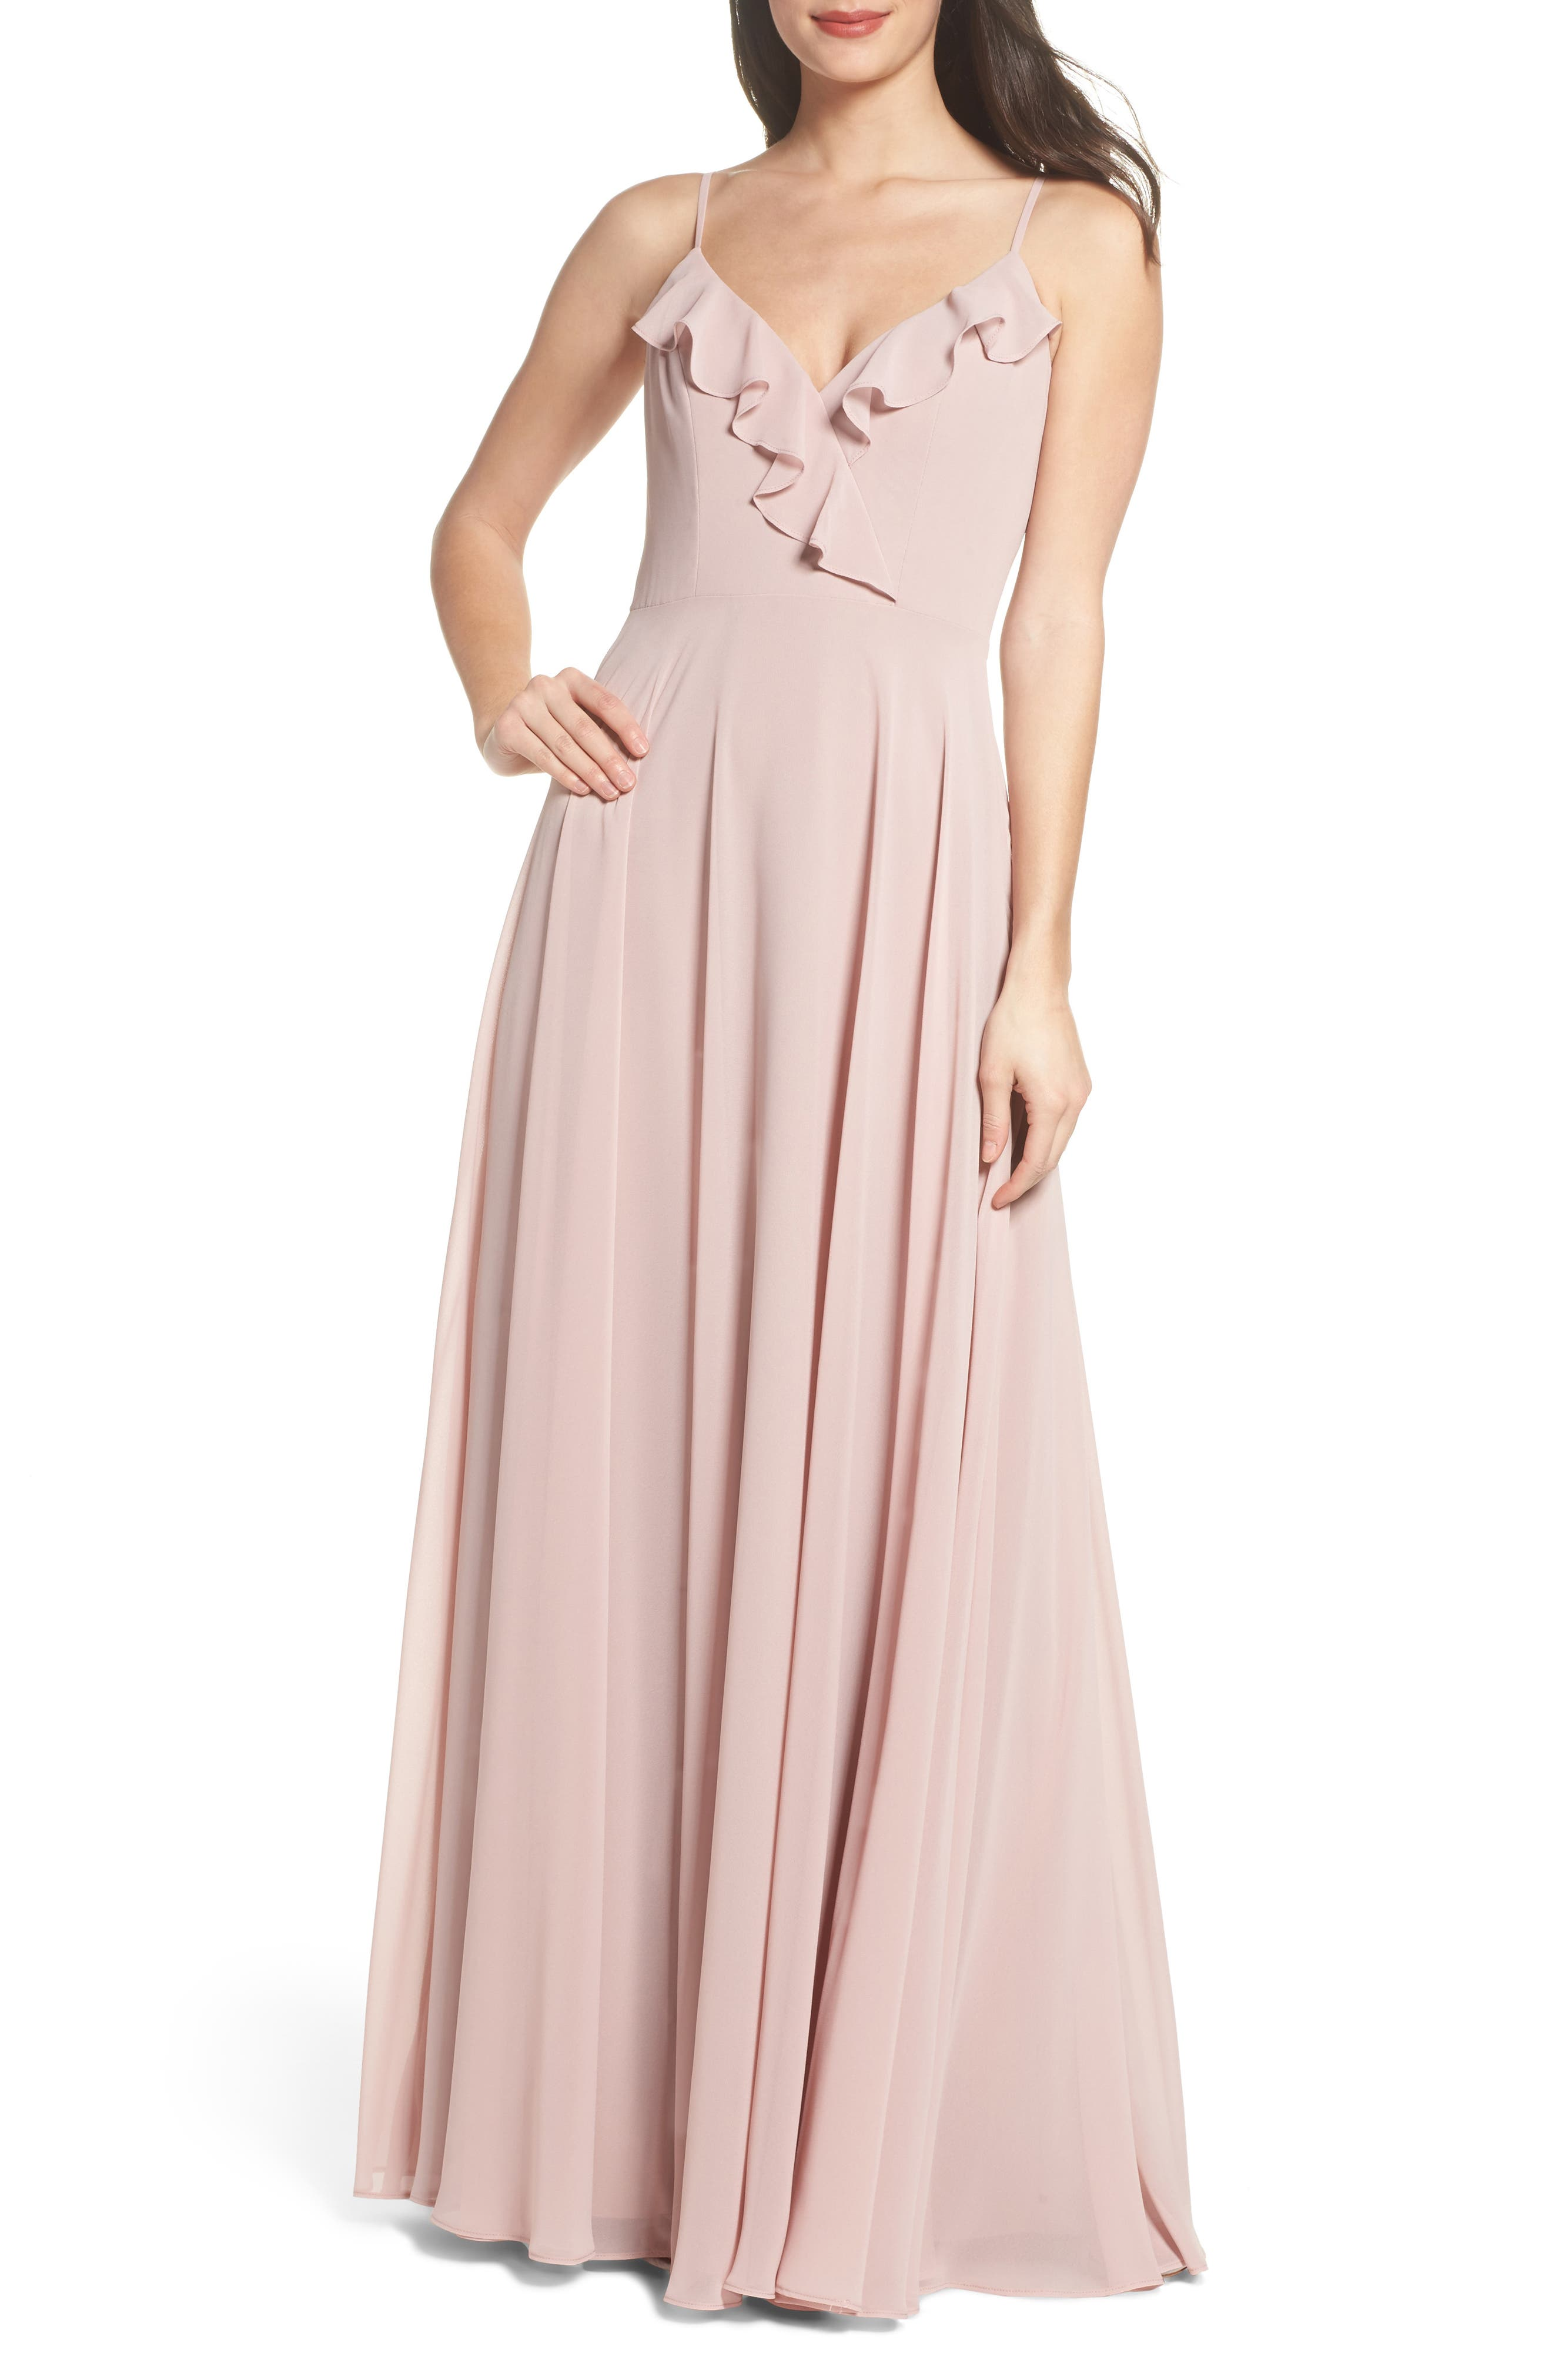 Hayley Paige Occasions Ruffle Chiffon Gown, Beige